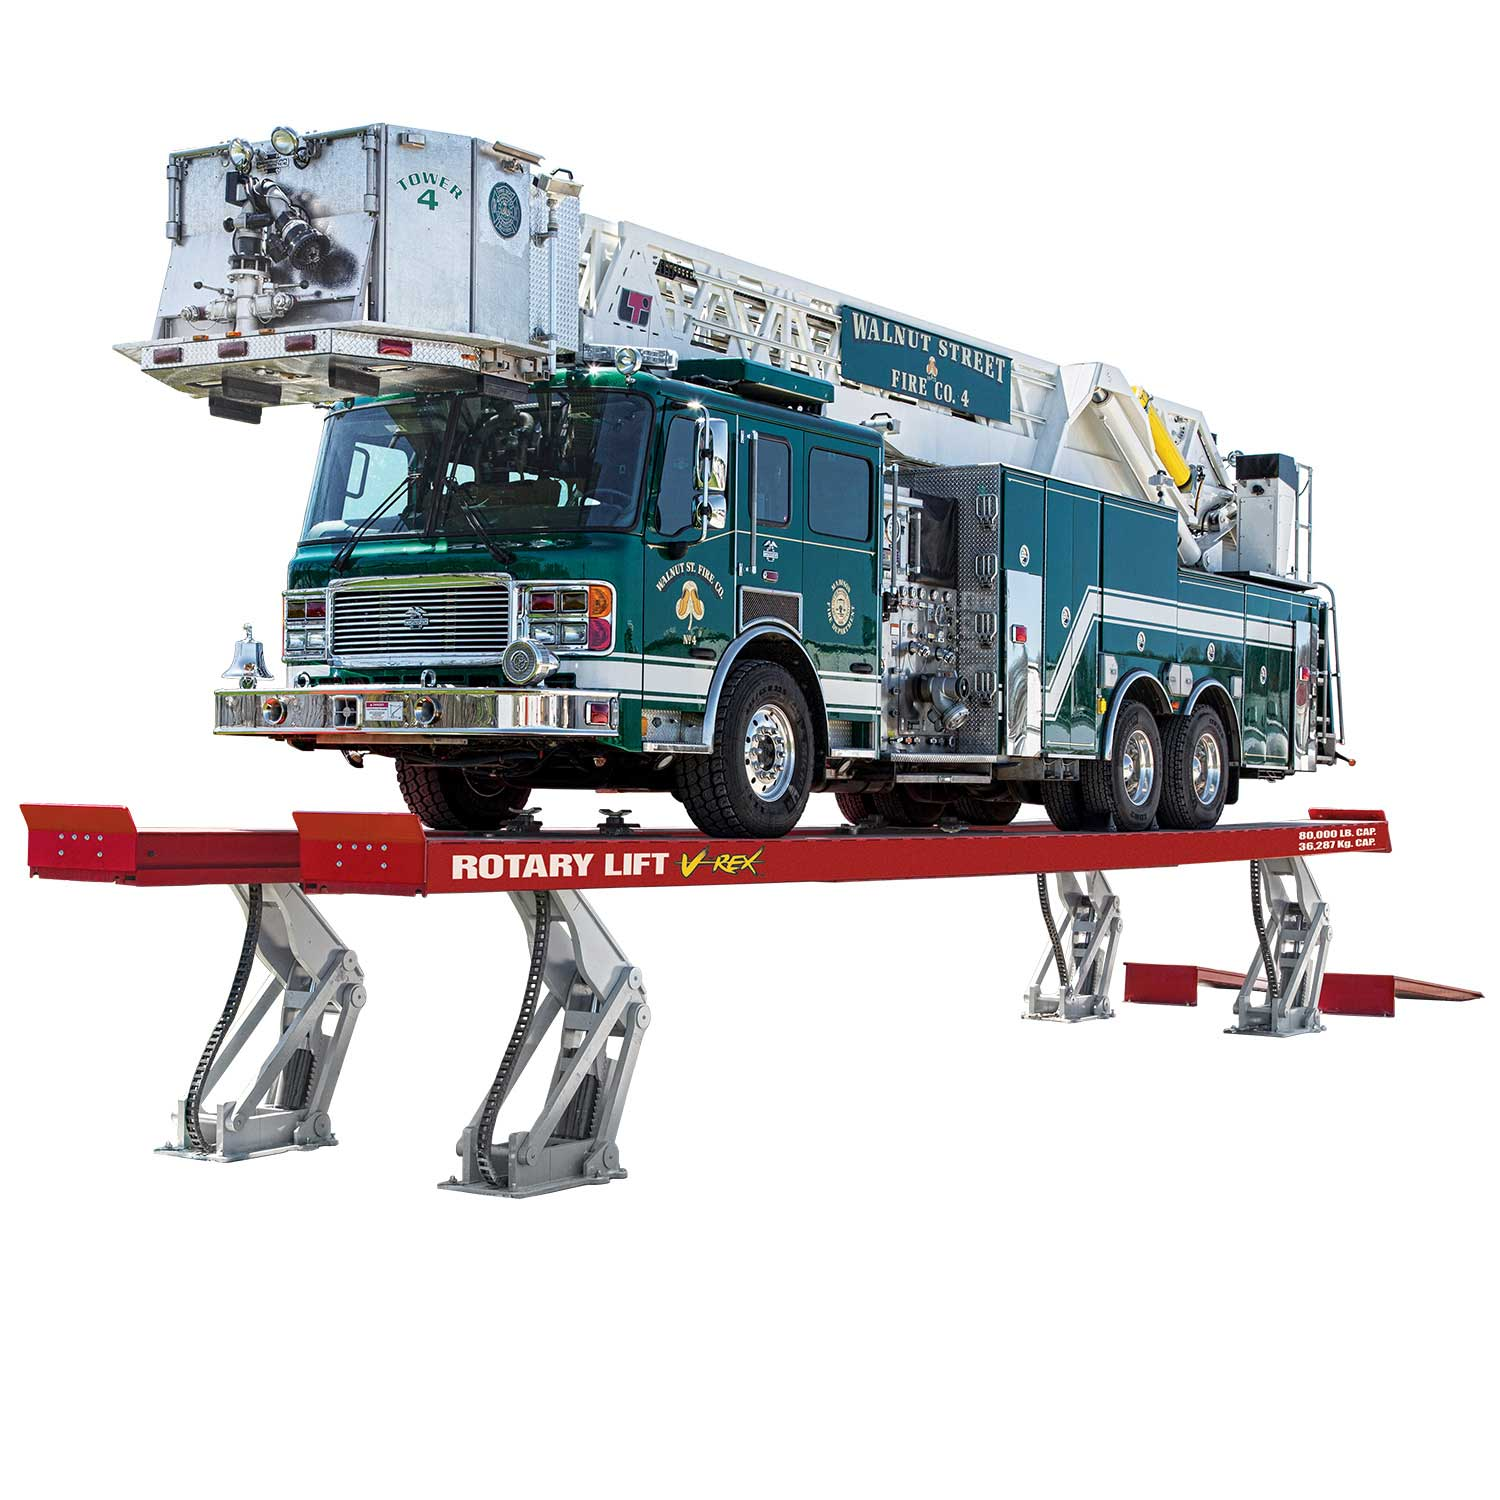 Image of Rotary Heavy Duty Lifts model VREX